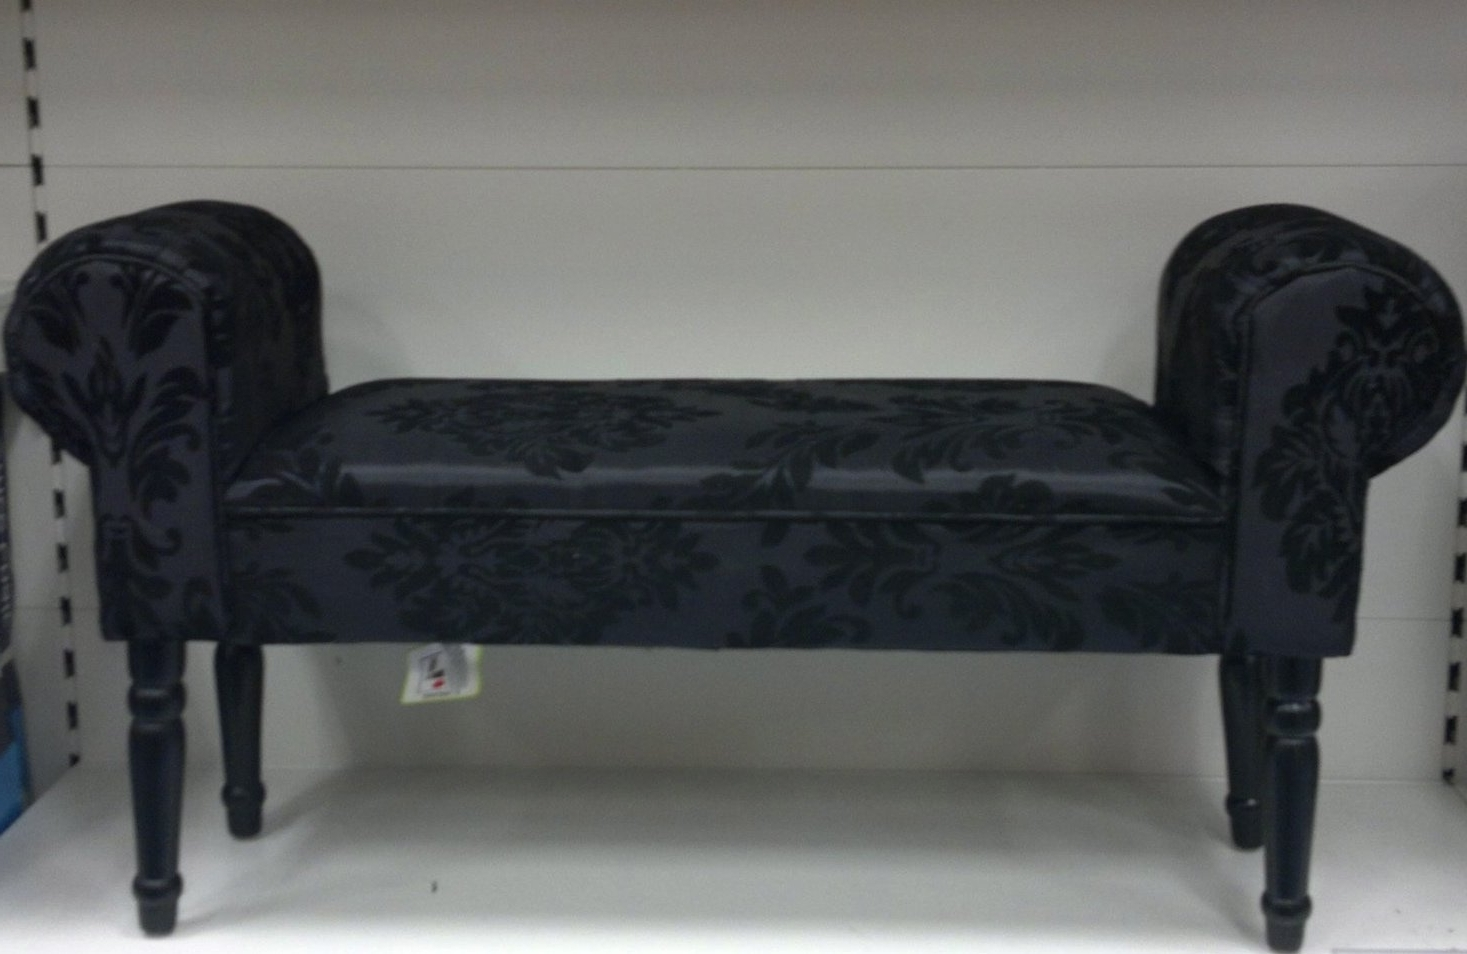 Well Known Black Chaise Lounges Regarding Black Damask Chaise Longue: Amazon.co (View 11 of 15)